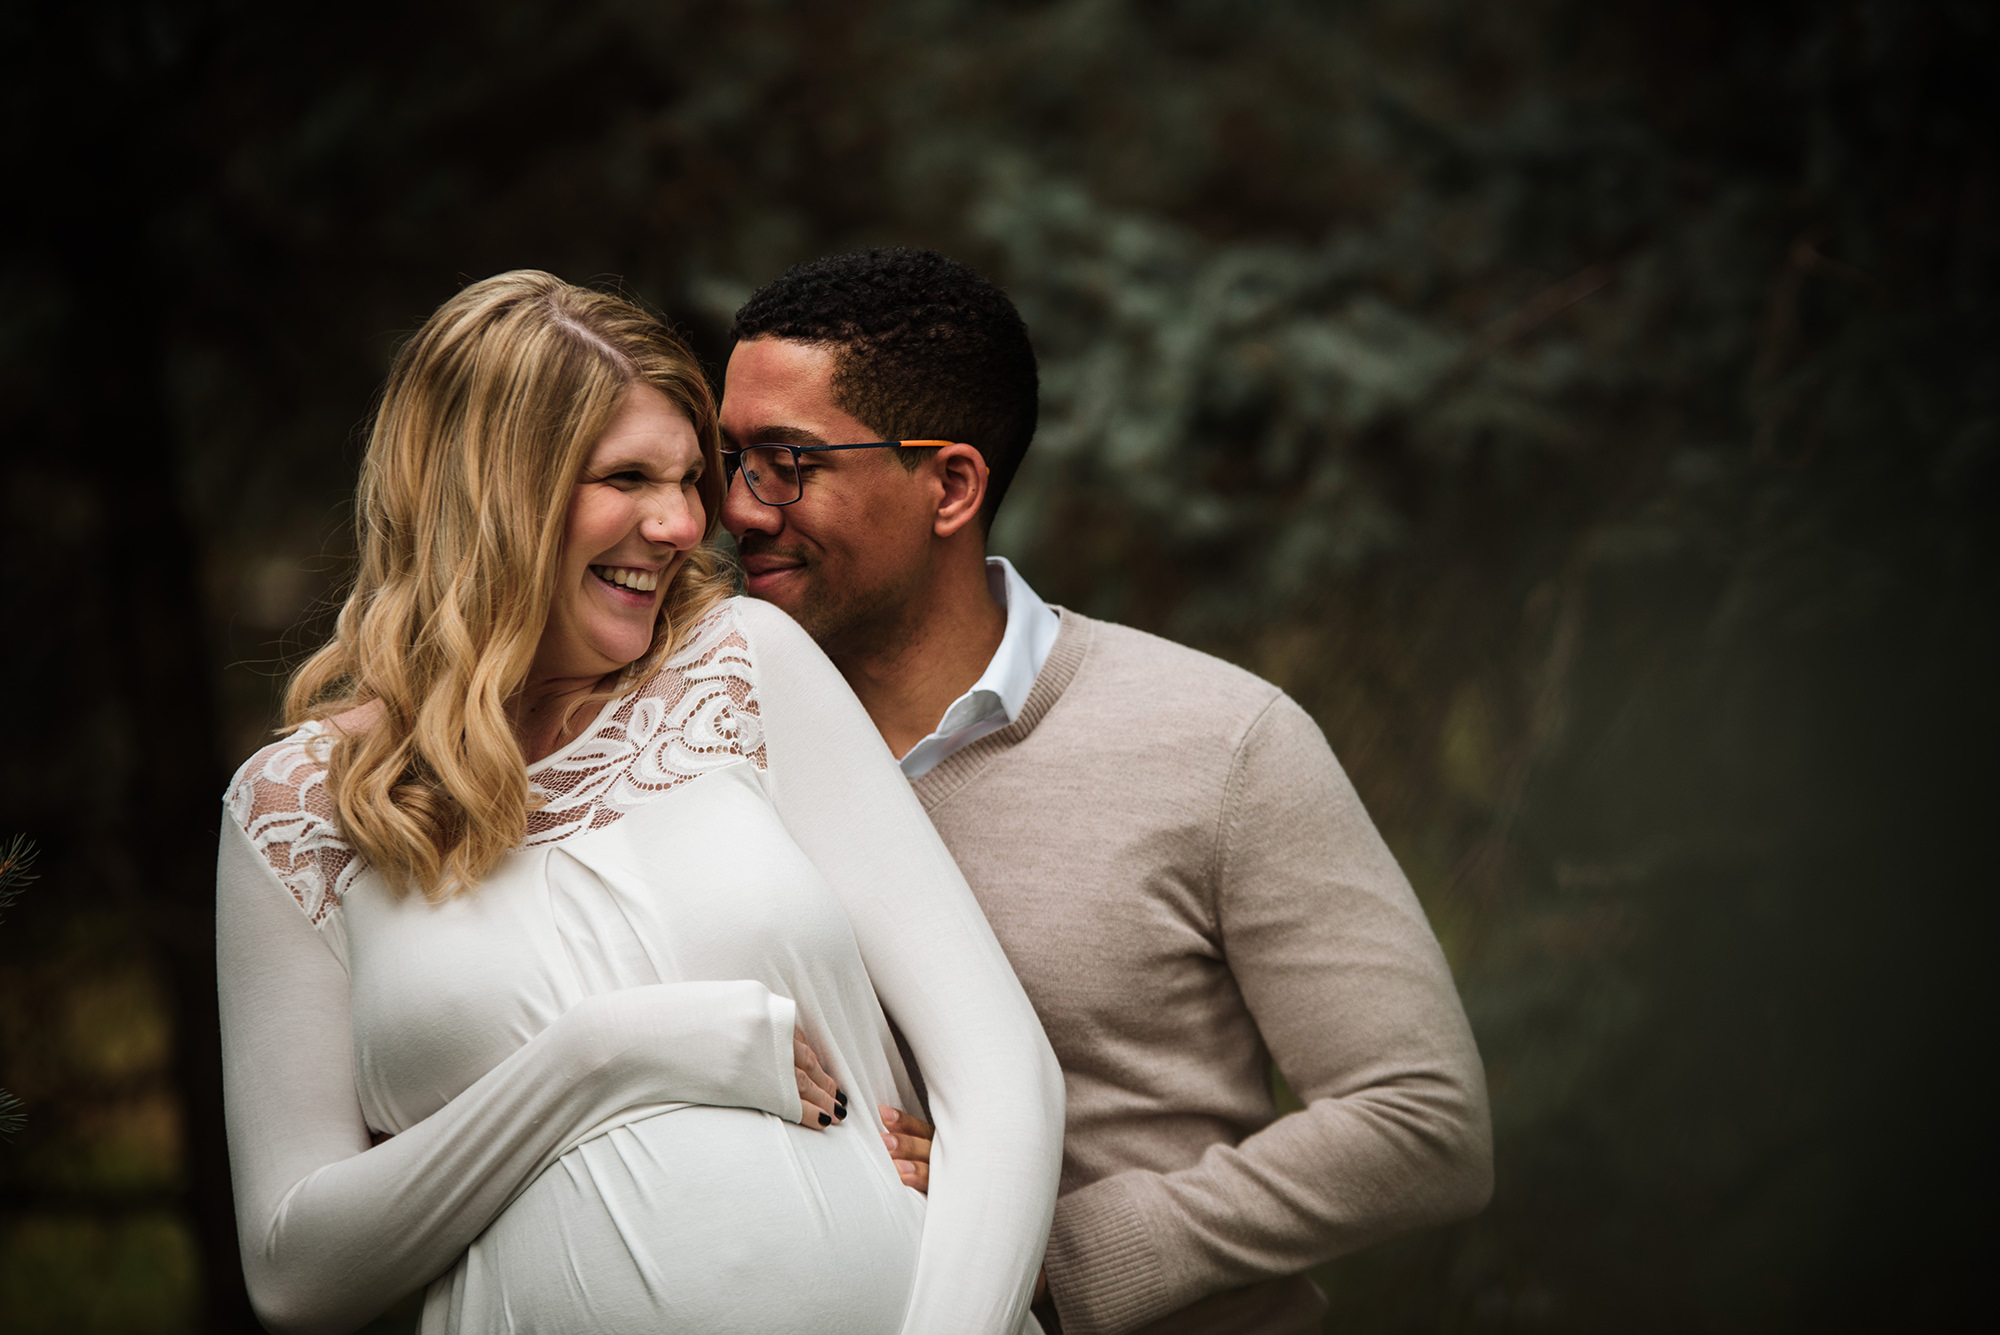 omaha-maternity-photos-memorial-park.jpg